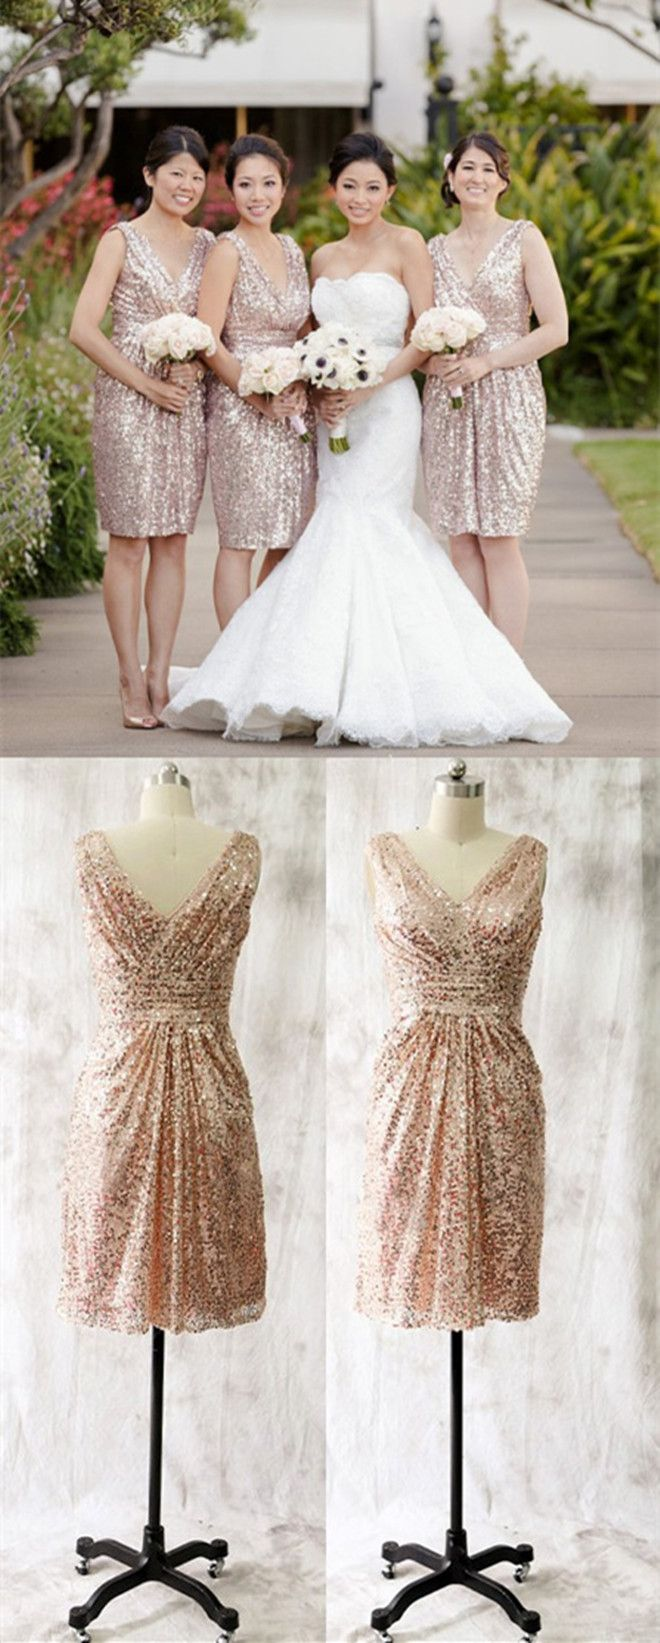 Best 25 rose gold bridesmaid dresses ideas on pinterest rose short bridesmaid dressessequins bridesmaid dressesrose gold bridesmaid dresseswedding party dresses ombrellifo Images